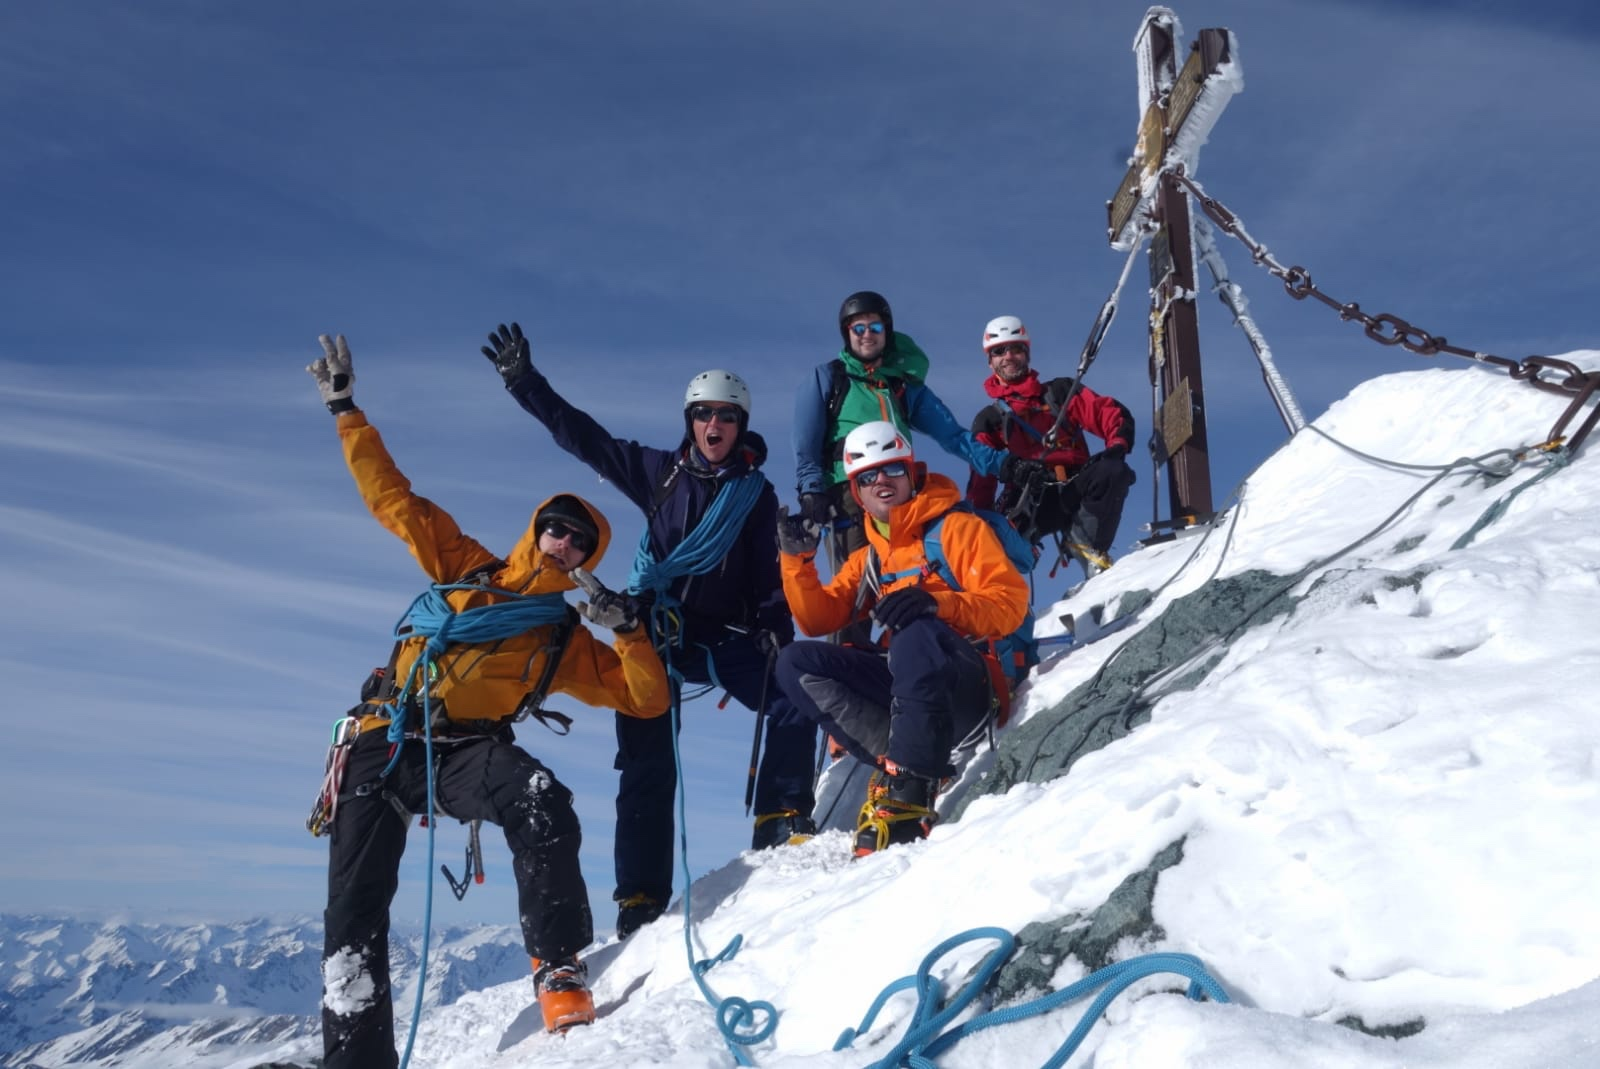 Summit of Grossglockner